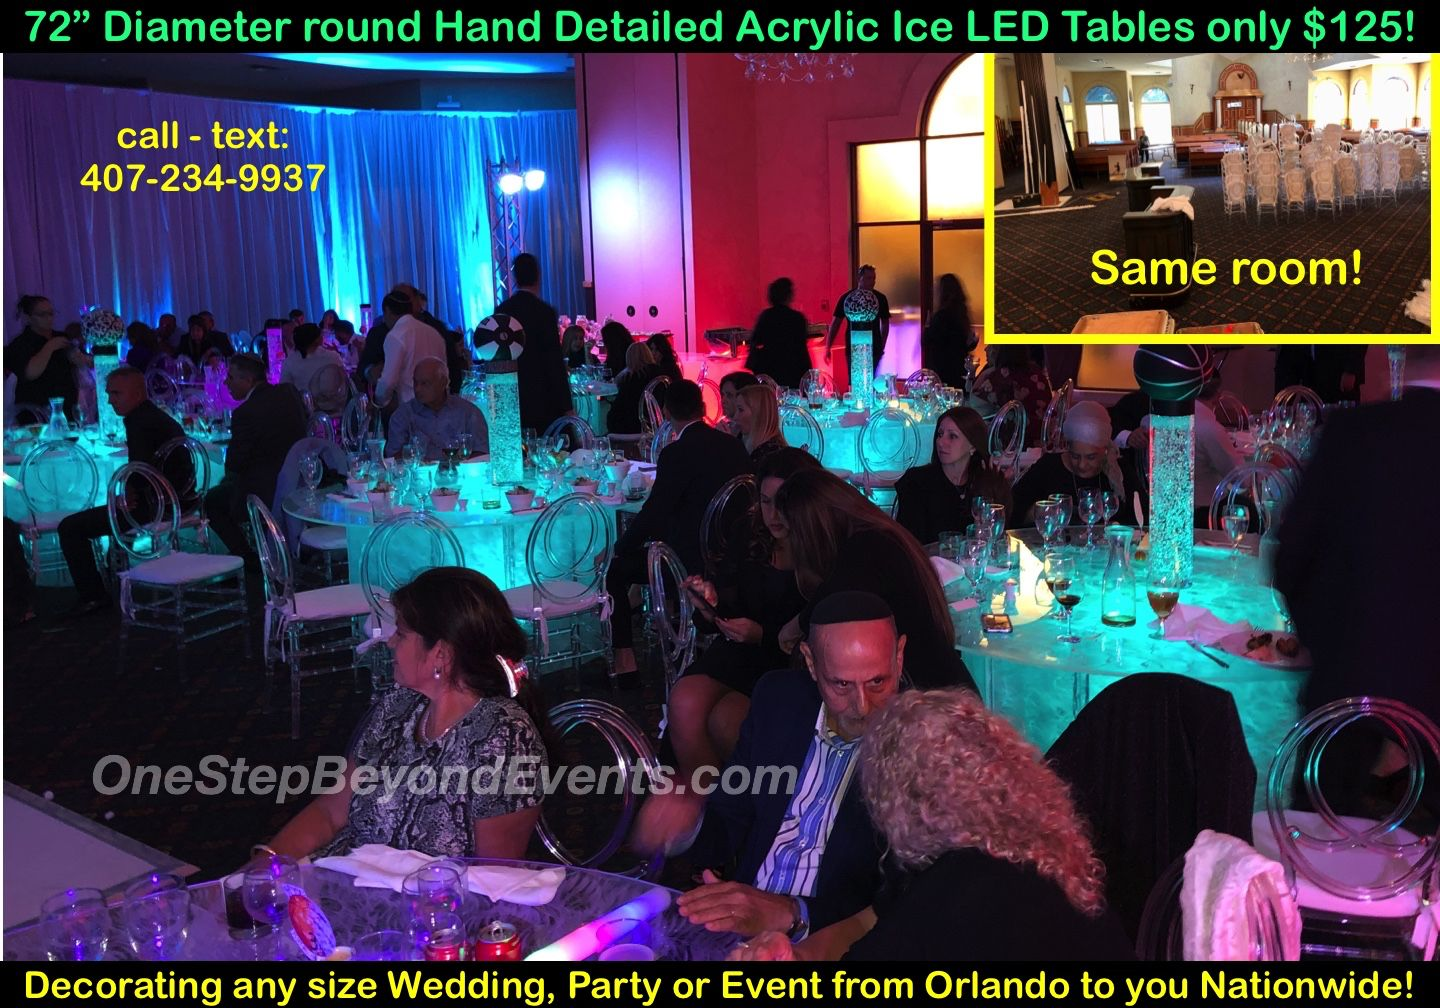 New Style Event Rental Ideas Glow Table Led Furniture Rentals South Beach Vegas Style Light Up Glow Decor 4 In 2020 Glow Table Party Rentals Disco Theme Parties